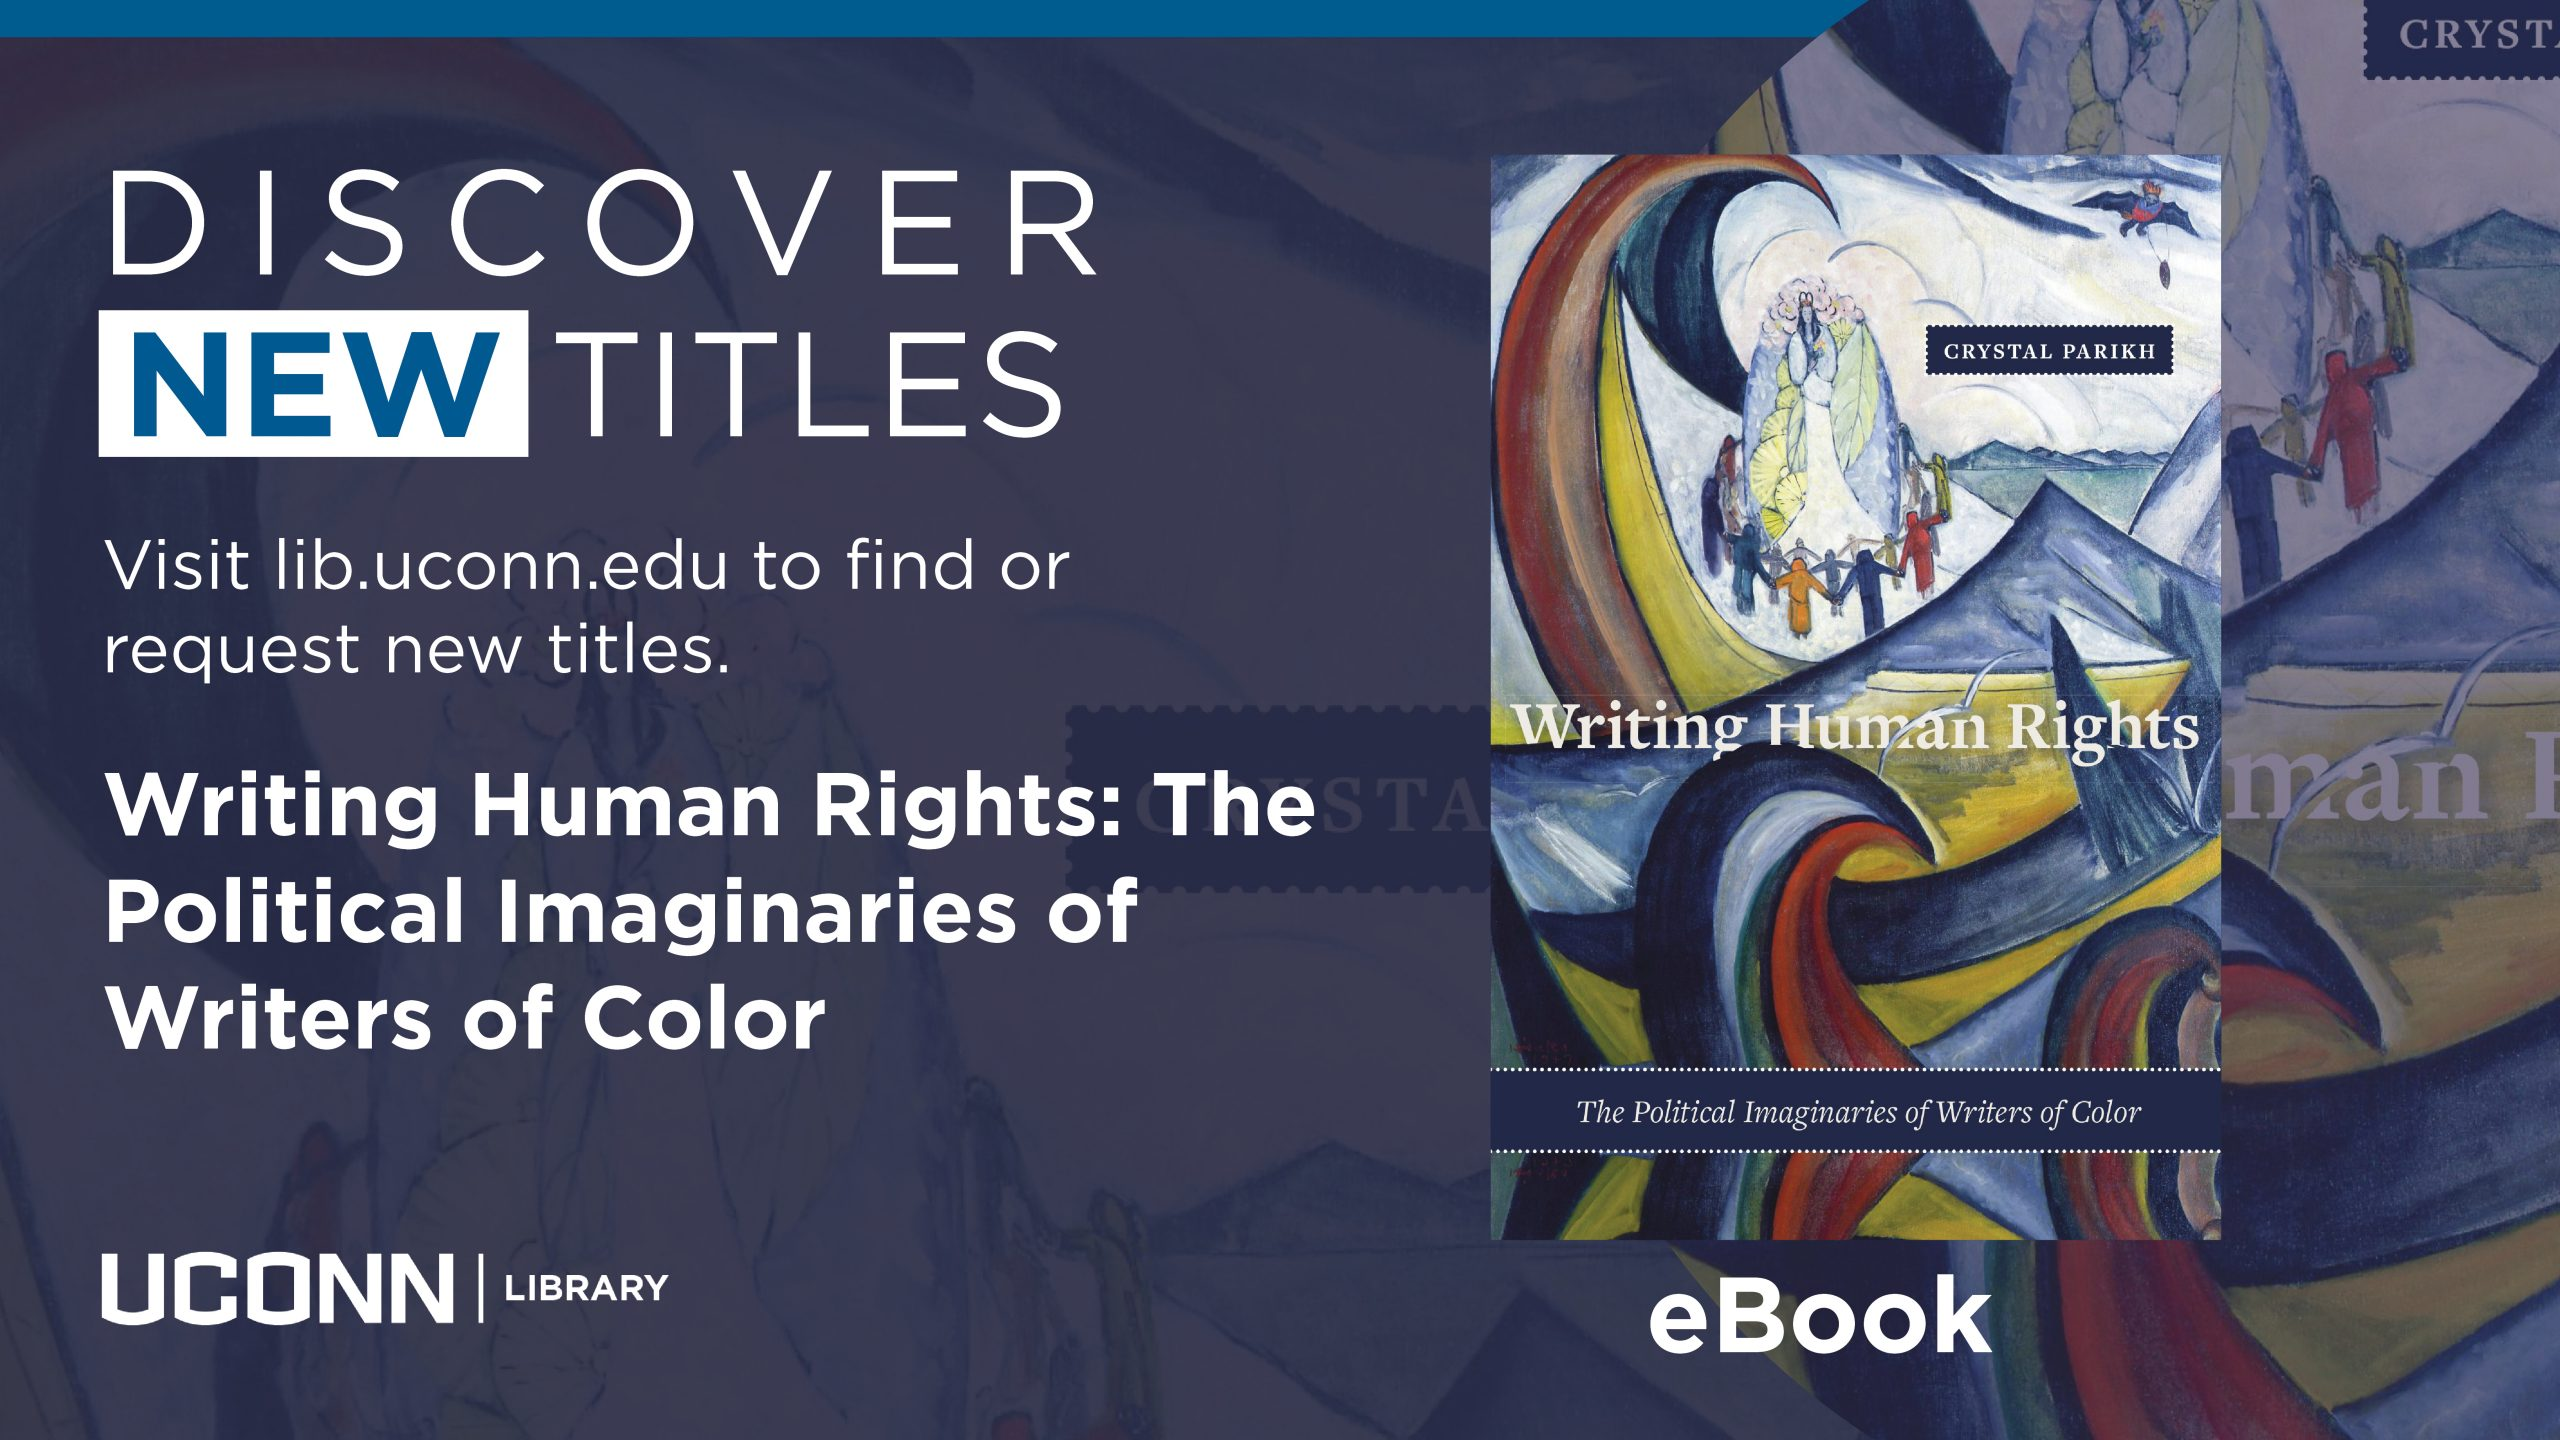 Discover New Titles, Writing Human Rights: The Political Imaginaries of Writers of Color, eBook, Visit lib.uconn.edu to find or request new titles